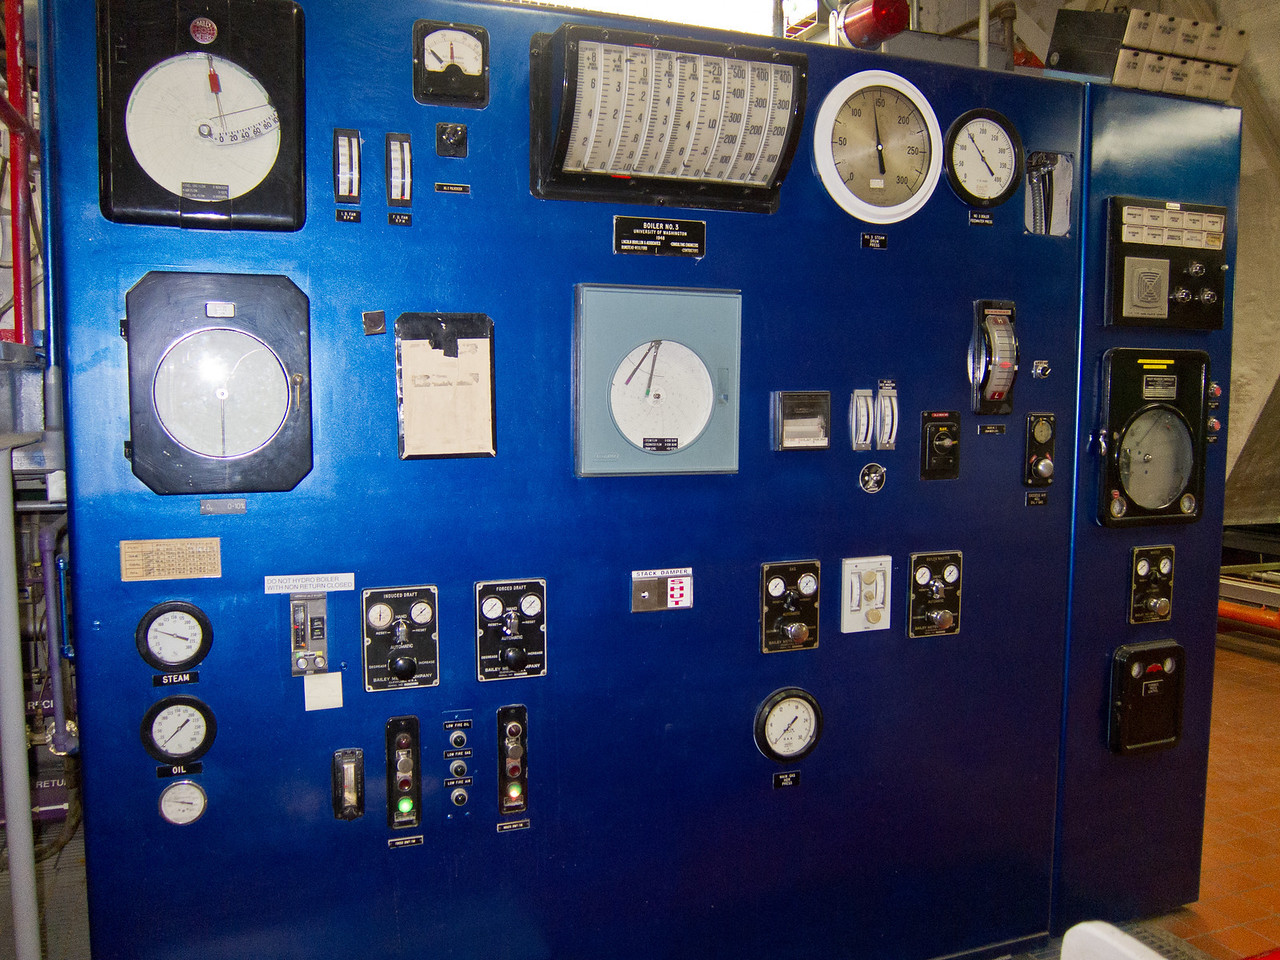 The control panel (recently painted) for the oldest boiler.